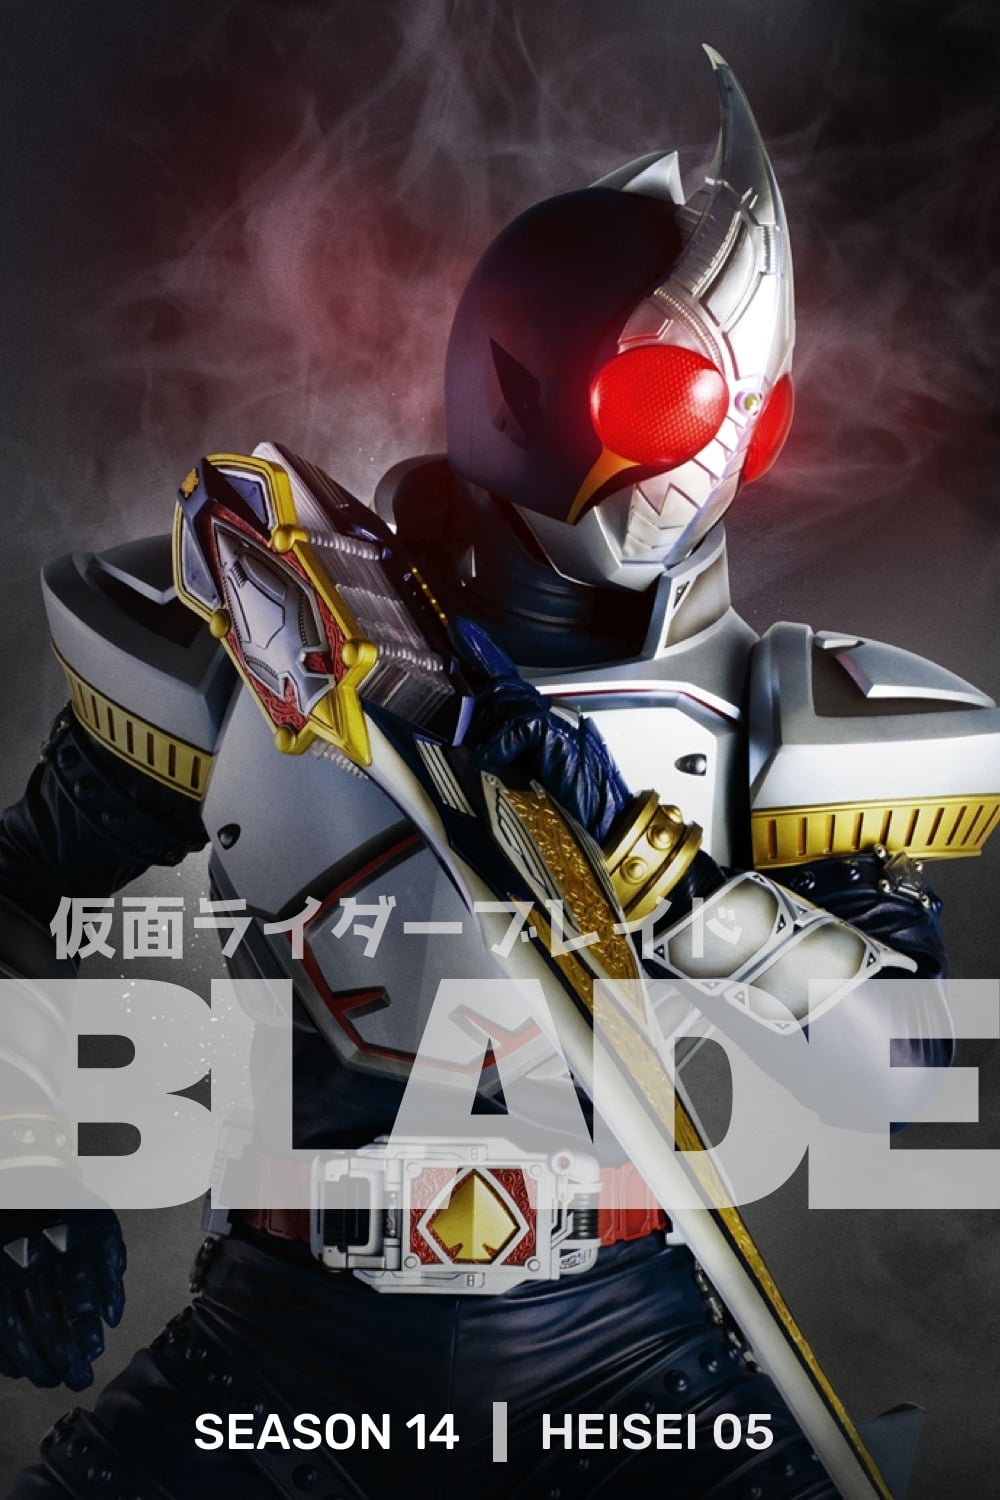 Kamen Rider - Season 21 Episode 1 : Medal, Underwear, Mysterious Arm Season 14